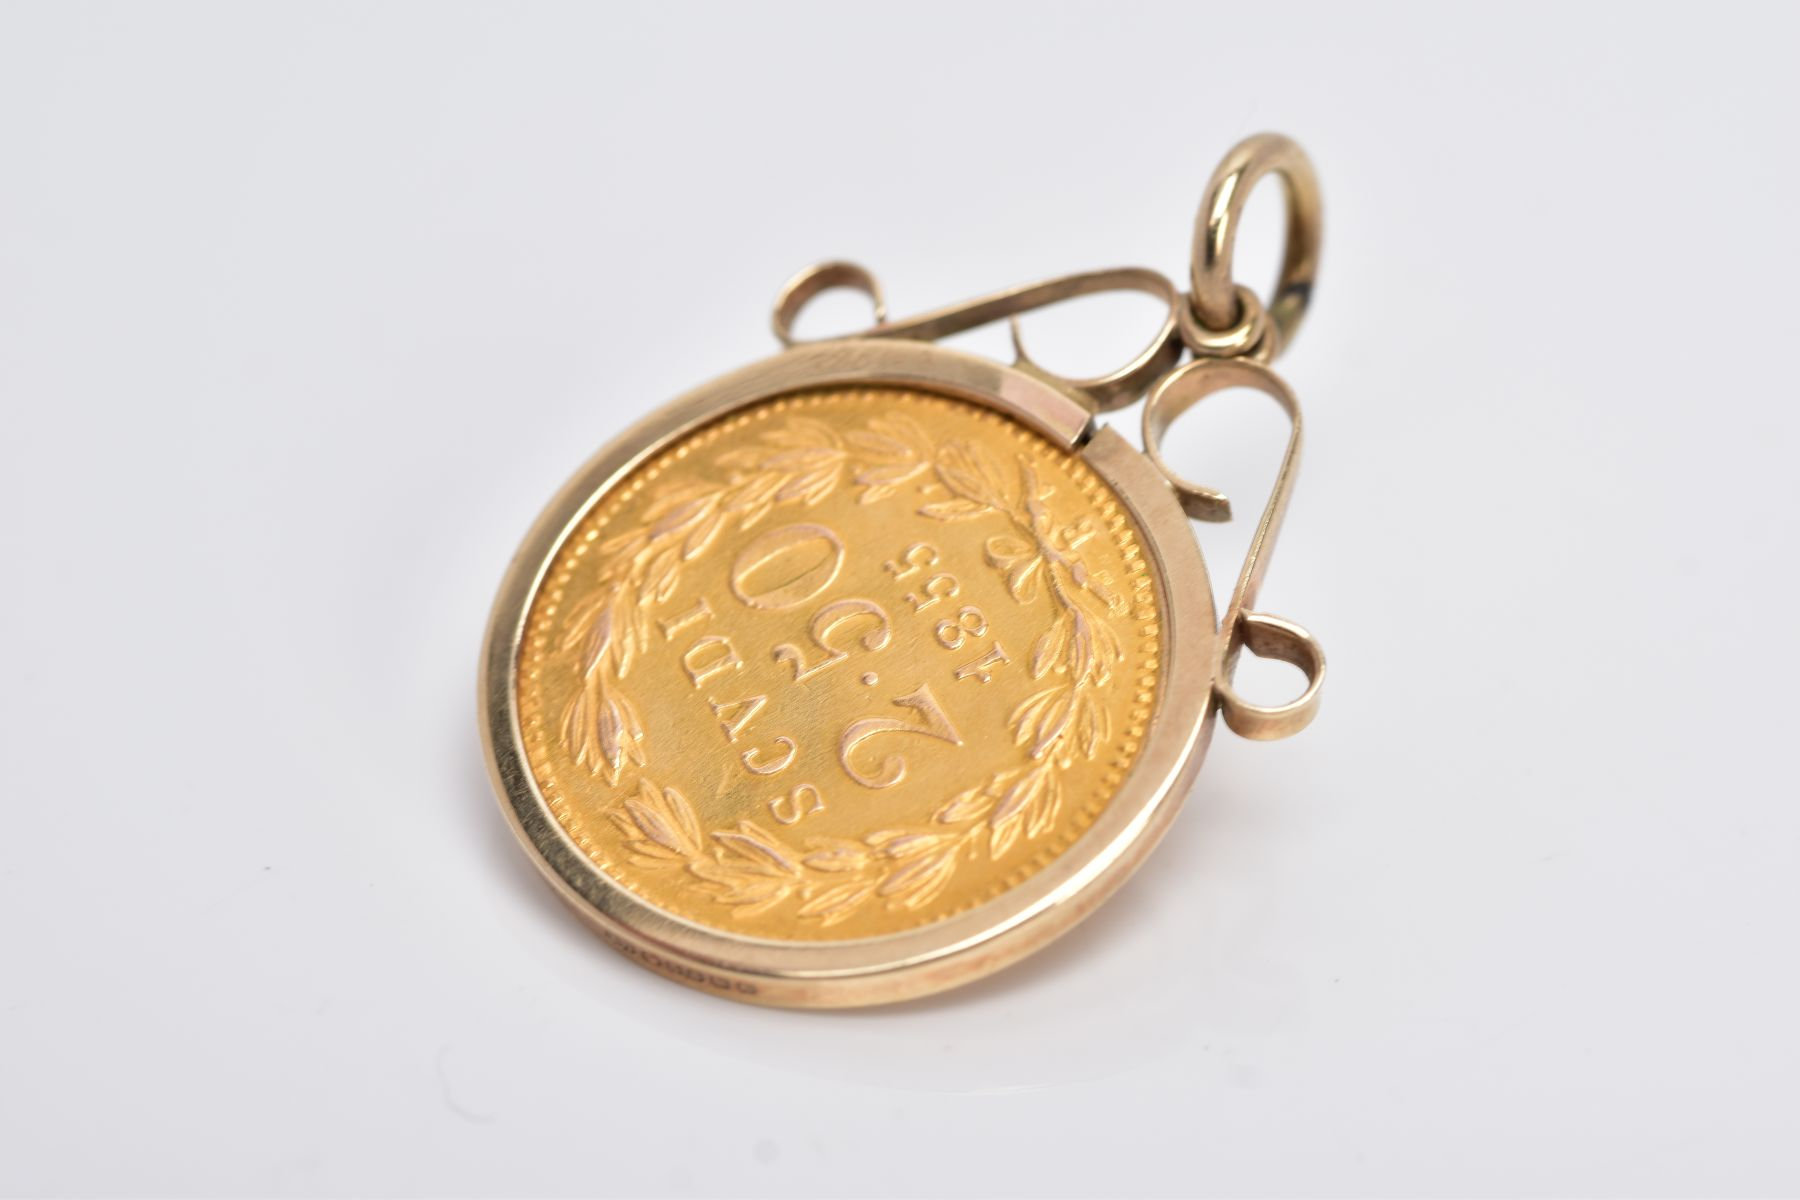 A MOUNTED 2.5 SCUDI COIN PENDANT, dated '1855', to the obverse depicts 'PIVS IX PON MAX AN X', - Image 4 of 4